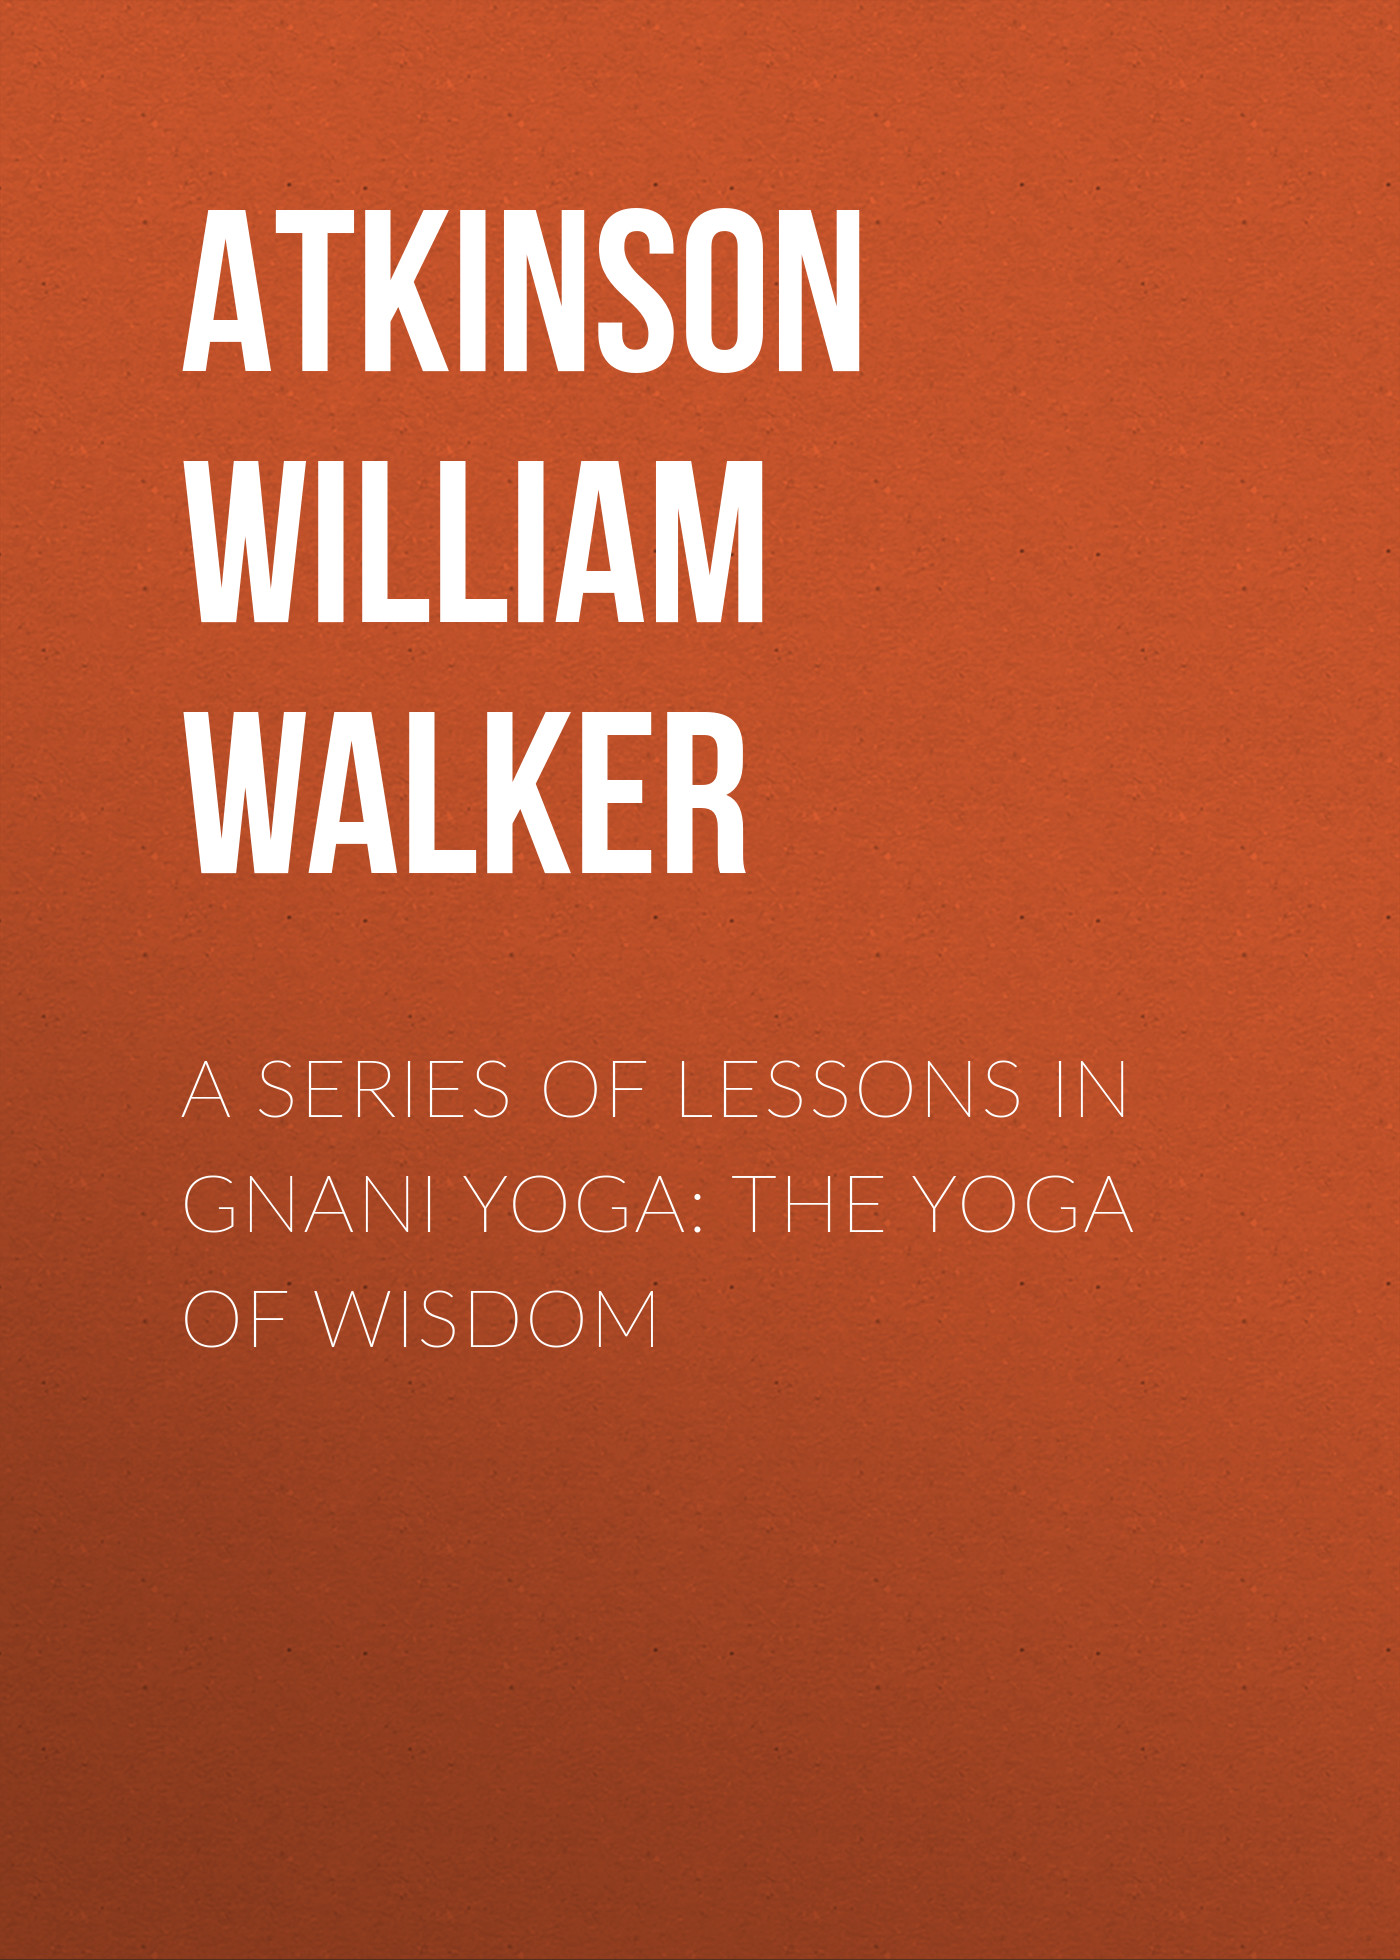 Atkinson William Walker A Series of Lessons in Gnani Yoga: The Yoga of Wisdom tibetan yoga of movement